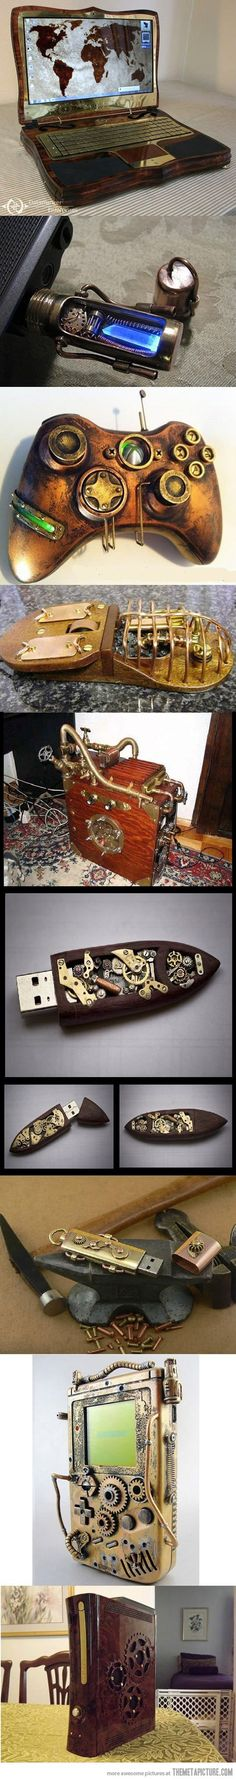 Gear mods for all the steampunk people out there. You can find more information at: www.qsample.com/gamers